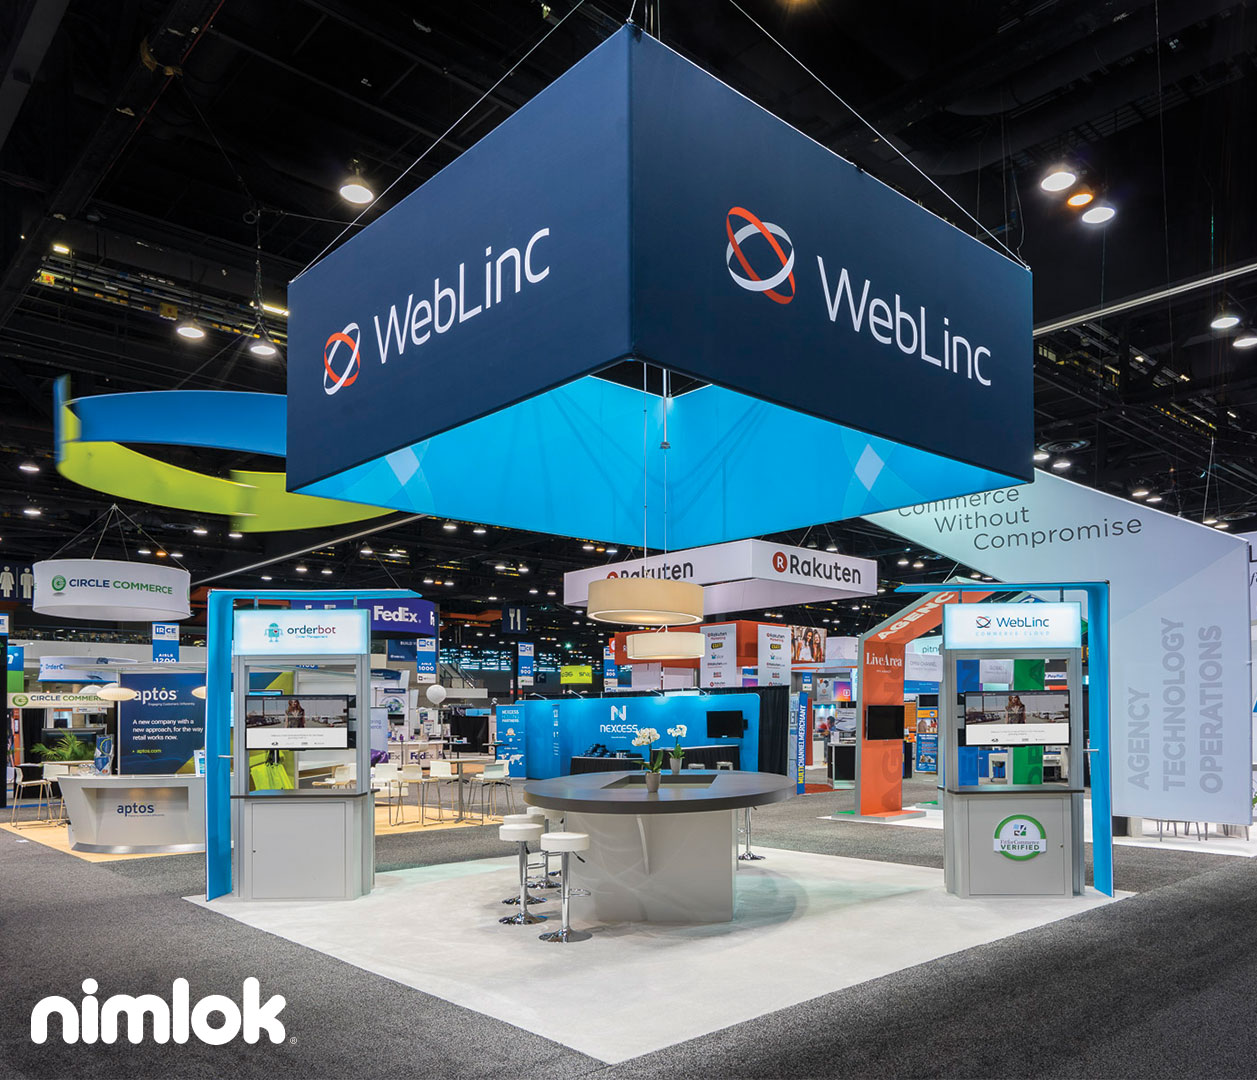 Trade Show Booth Visitors : Weblinc trade show exhibit v nimlok